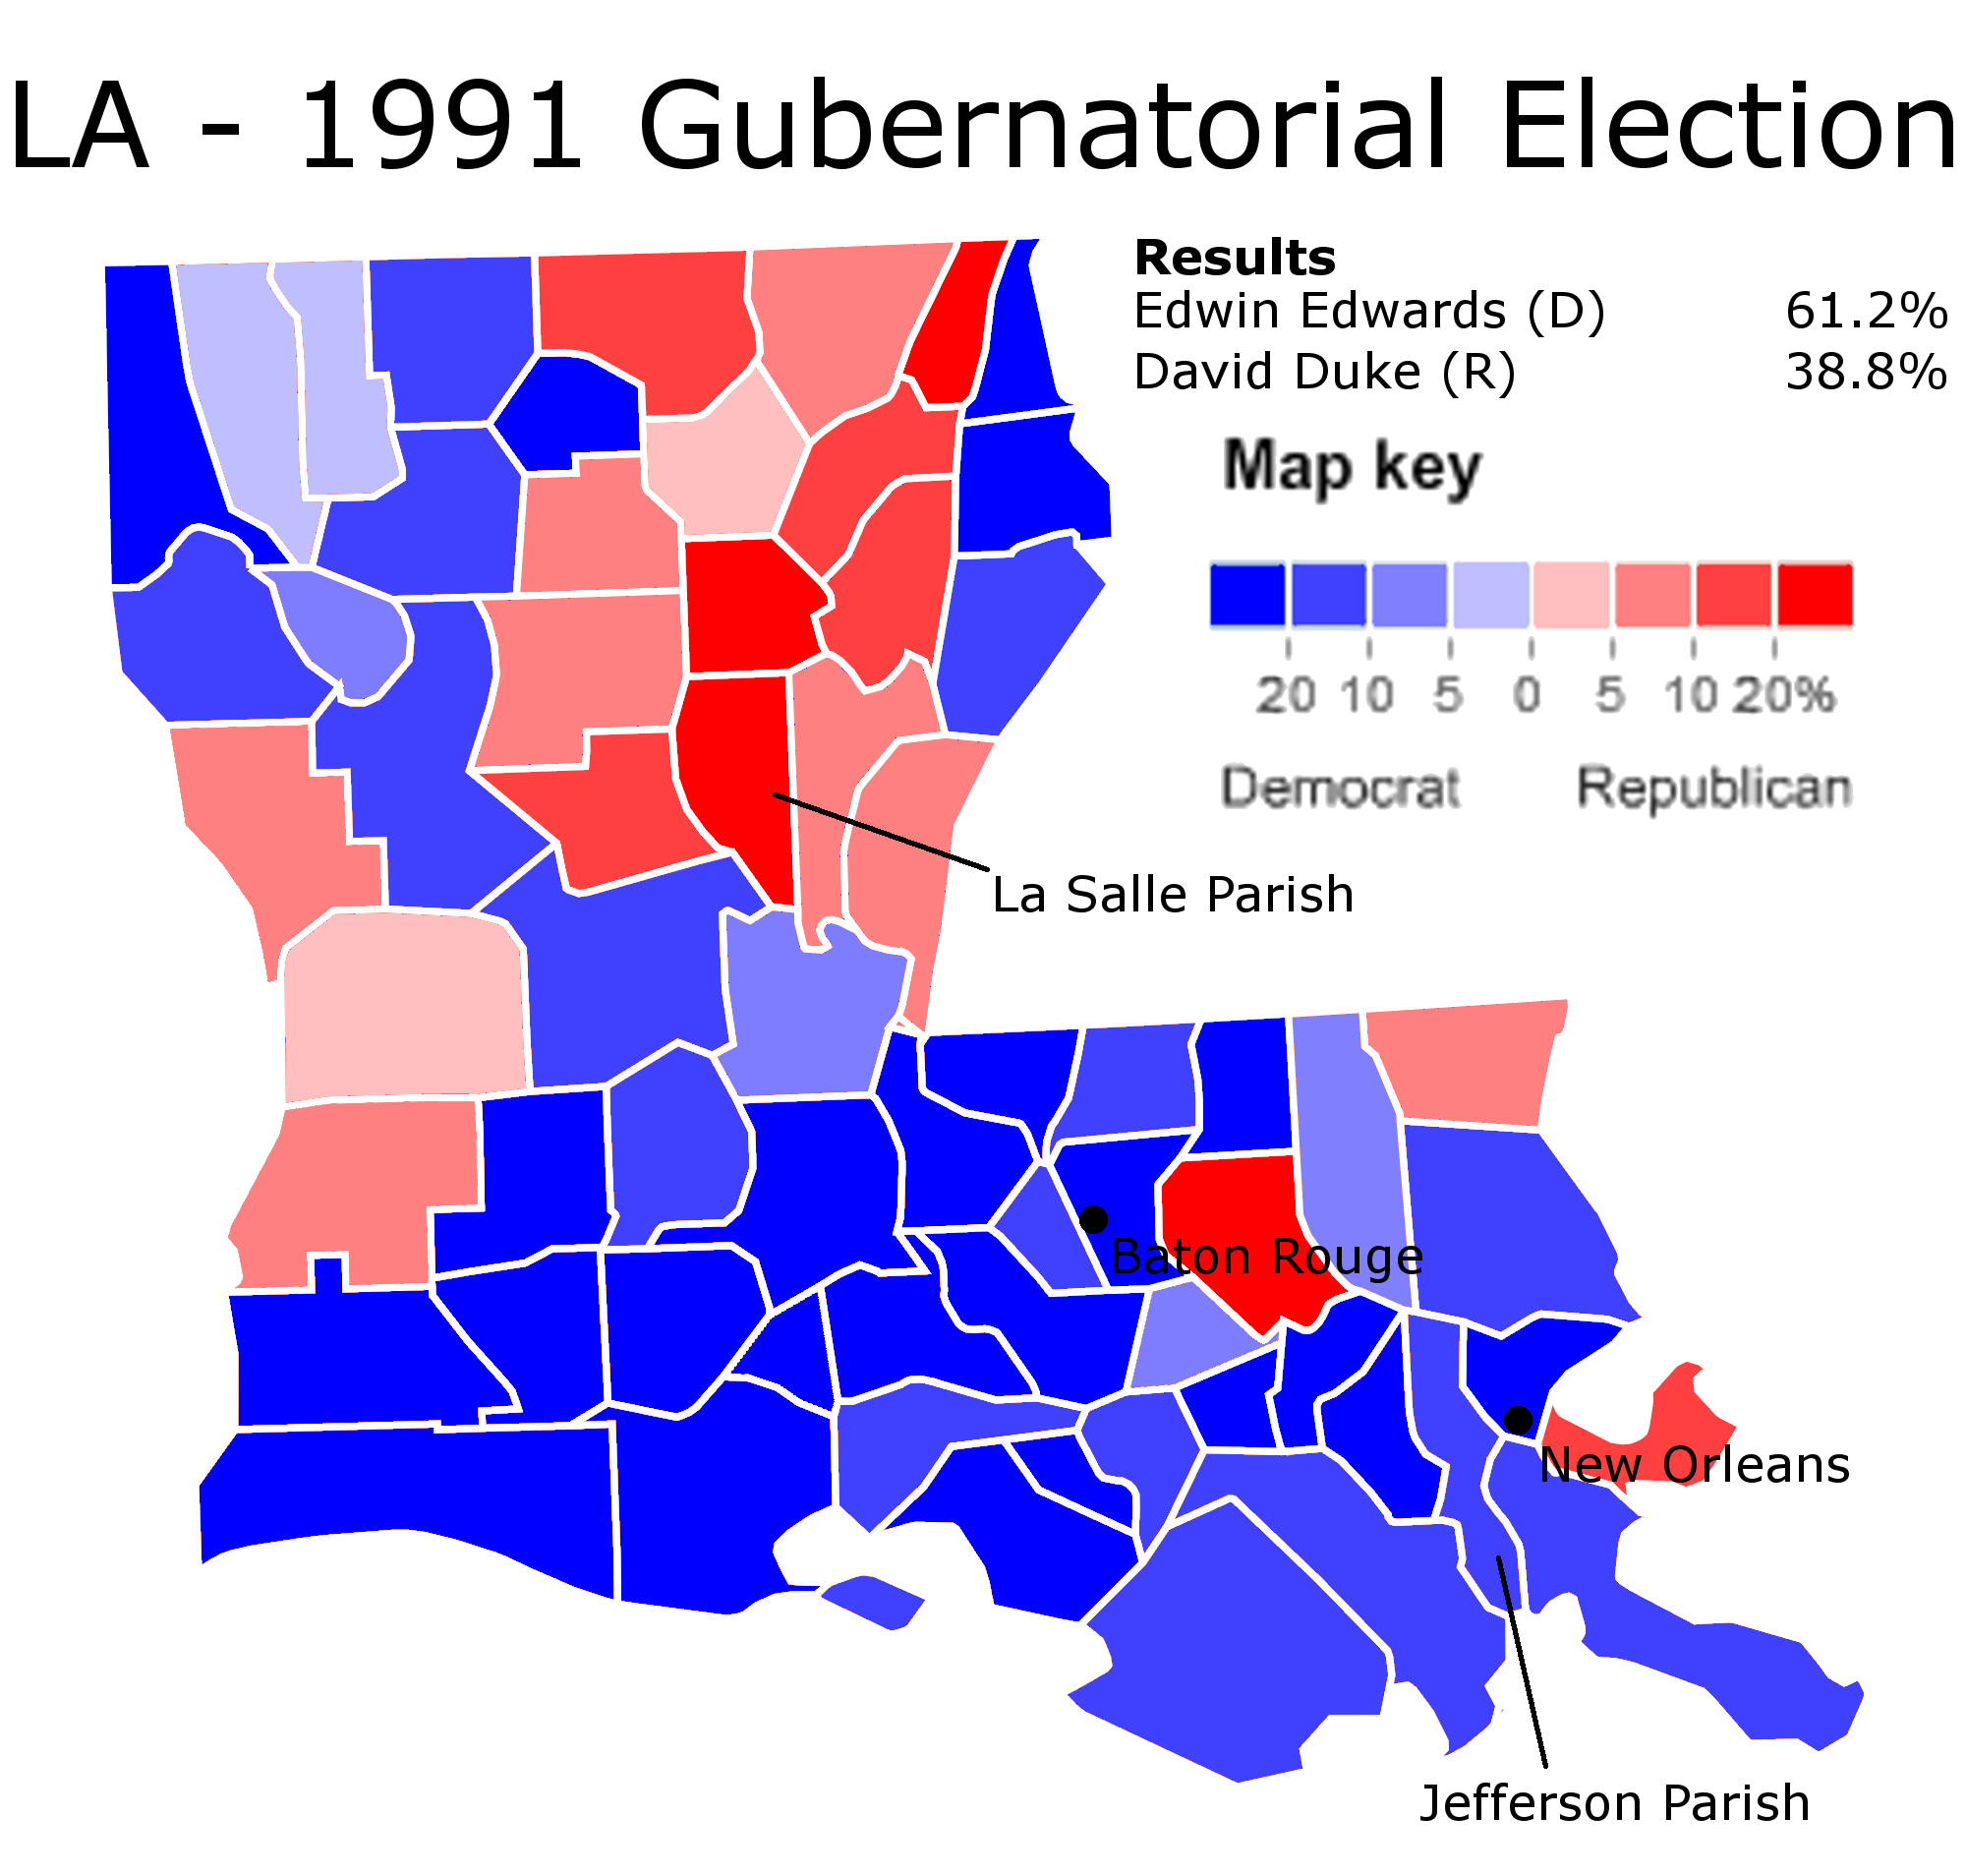 Louisiana Governor39s Election Submited Images